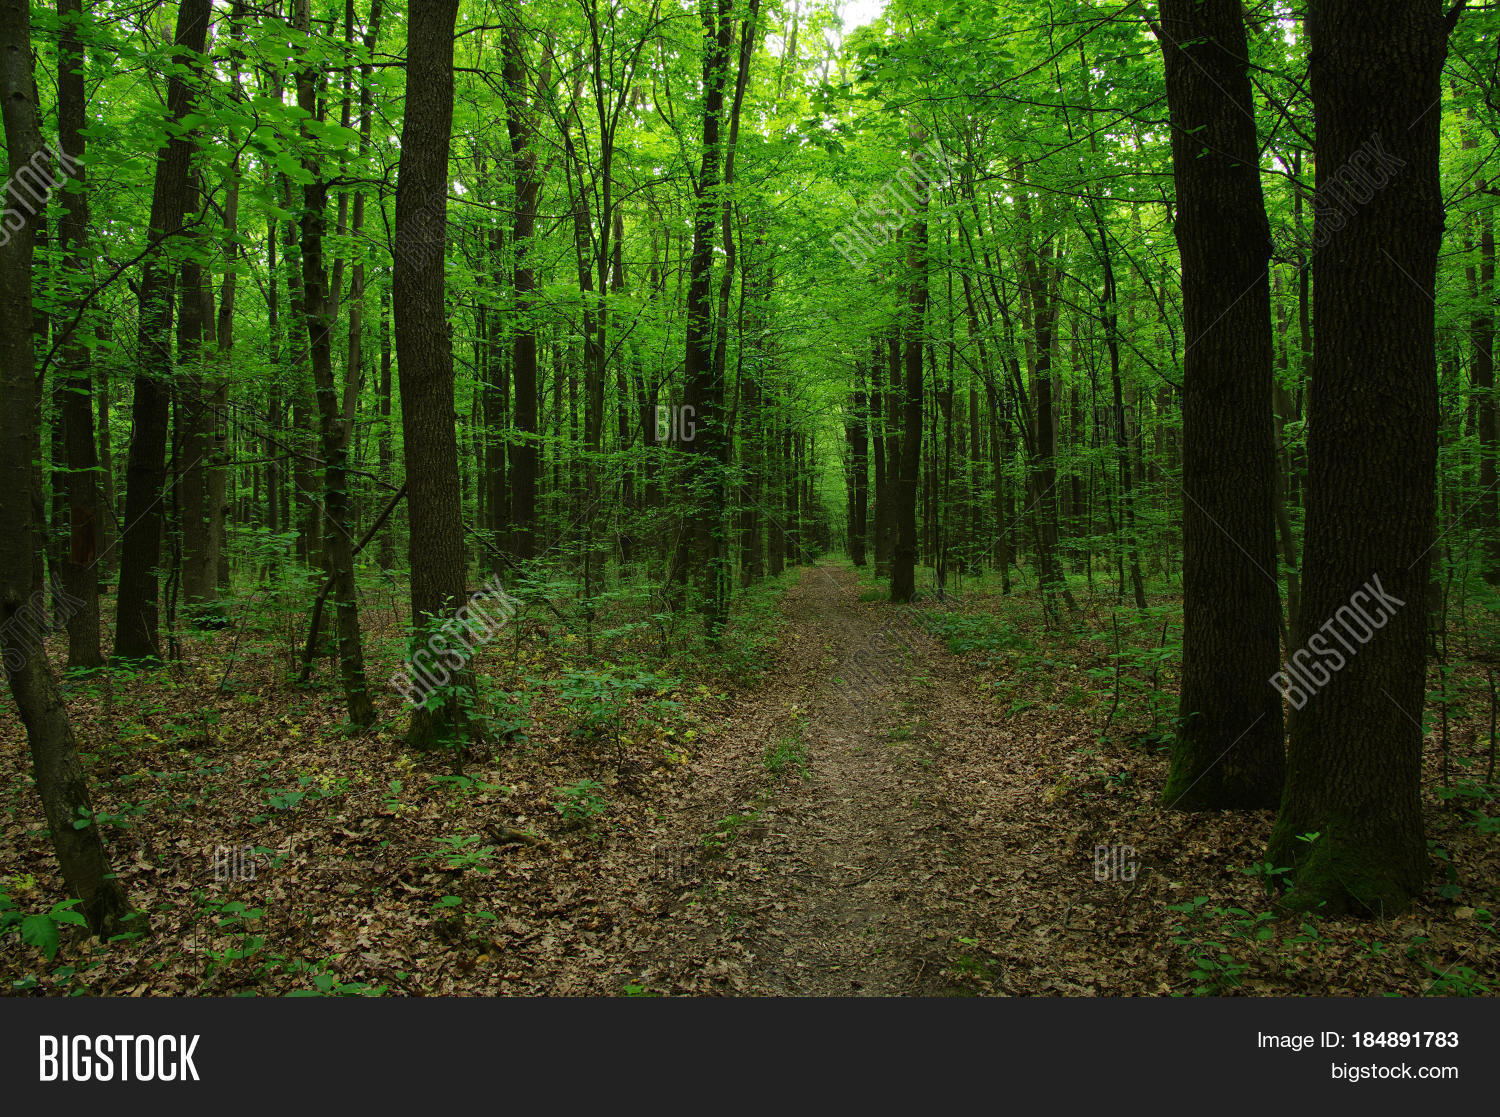 forest big and beautiful singles A forest is a large area dominated by trees hundreds of more precise definitions of forest are used throughout the world, incorporating factors such as tree density, tree height, land use, legal standing and ecological function.